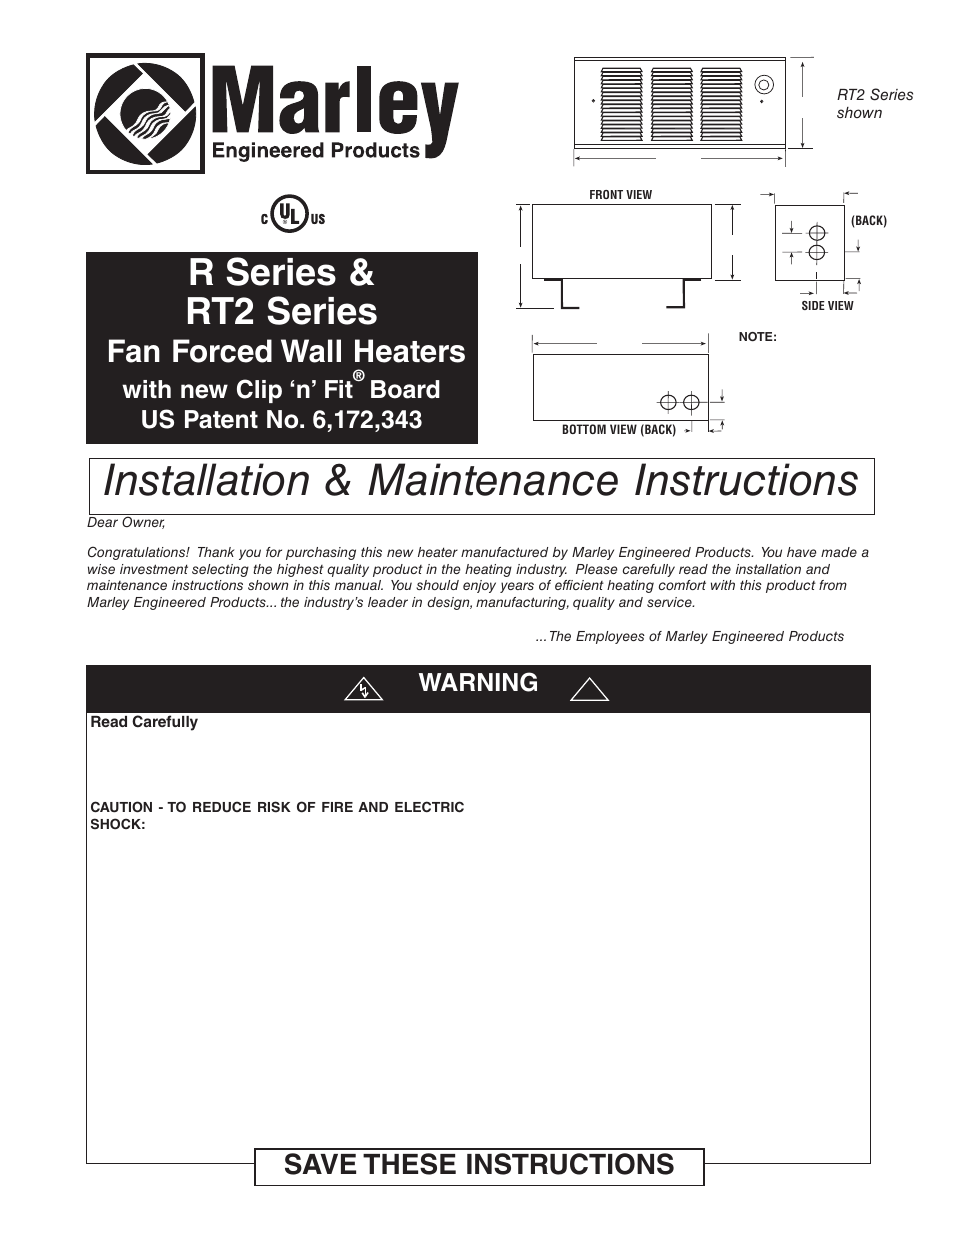 hight resolution of qmark gfr series fan forced wall heaters user manual 12 pages marley engineered products thermostat wiring